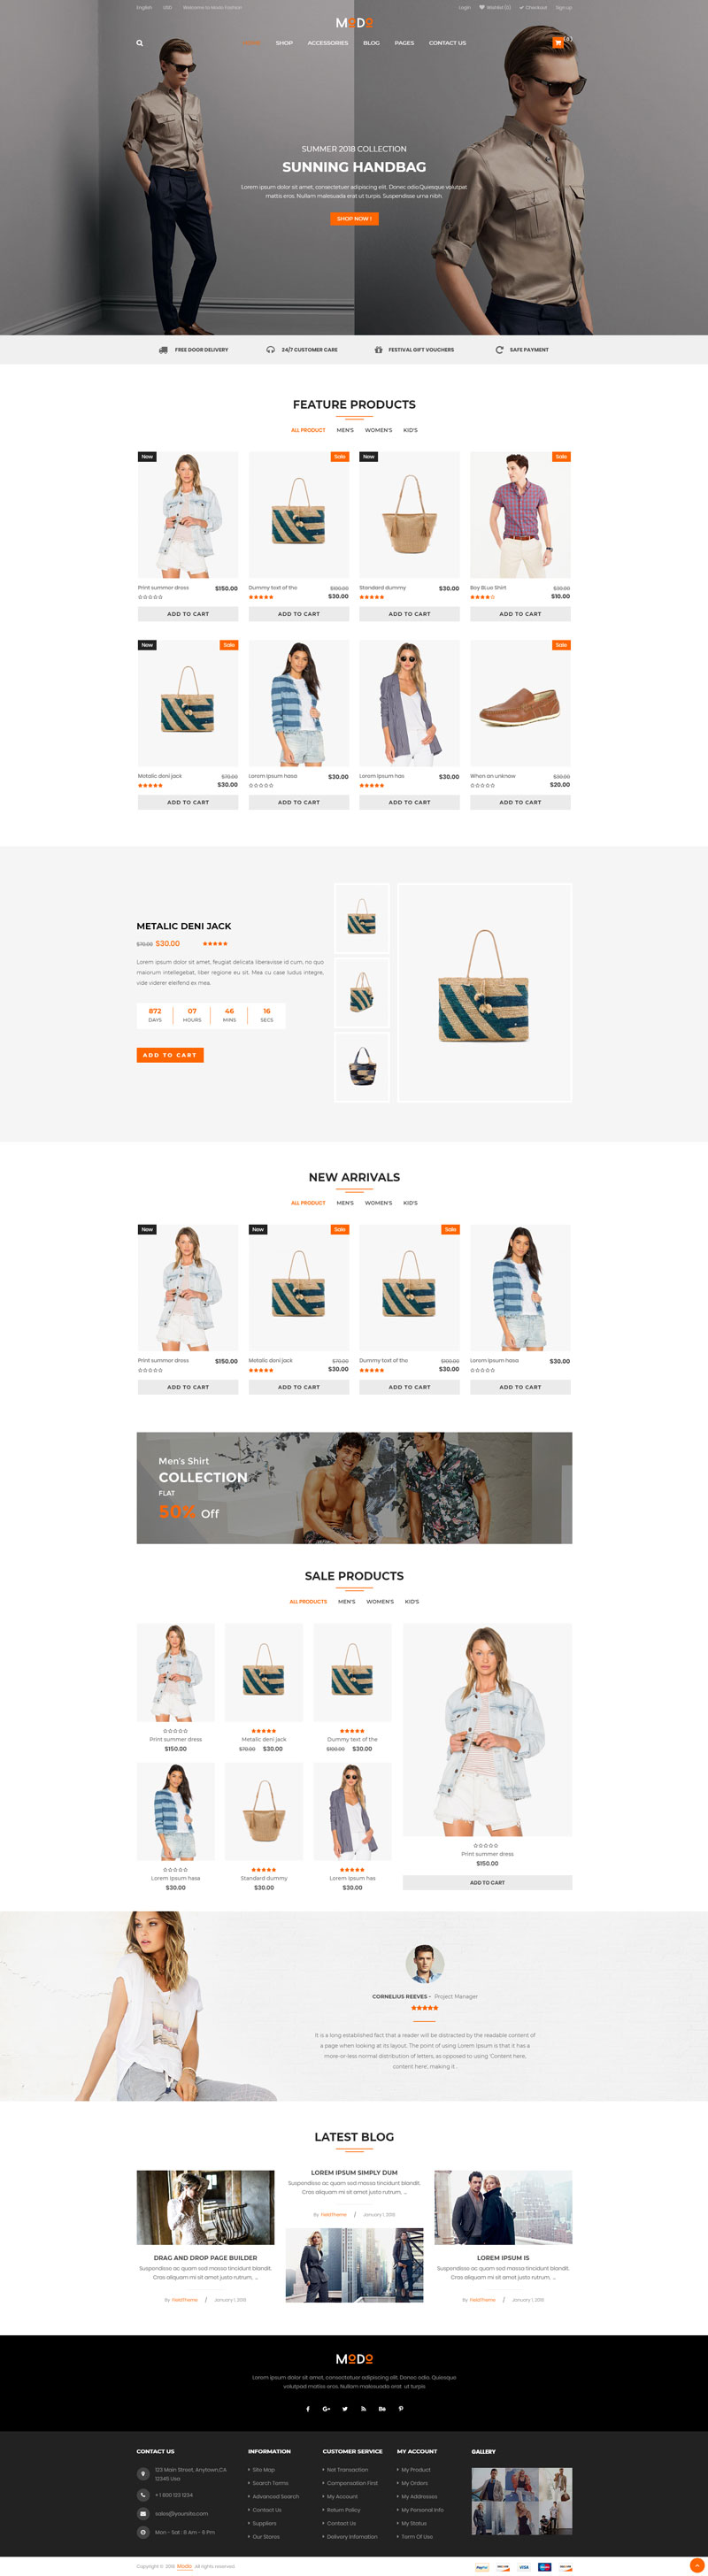 Modo-Fashion-Responsive-WooCommerce-WordPress-Theme